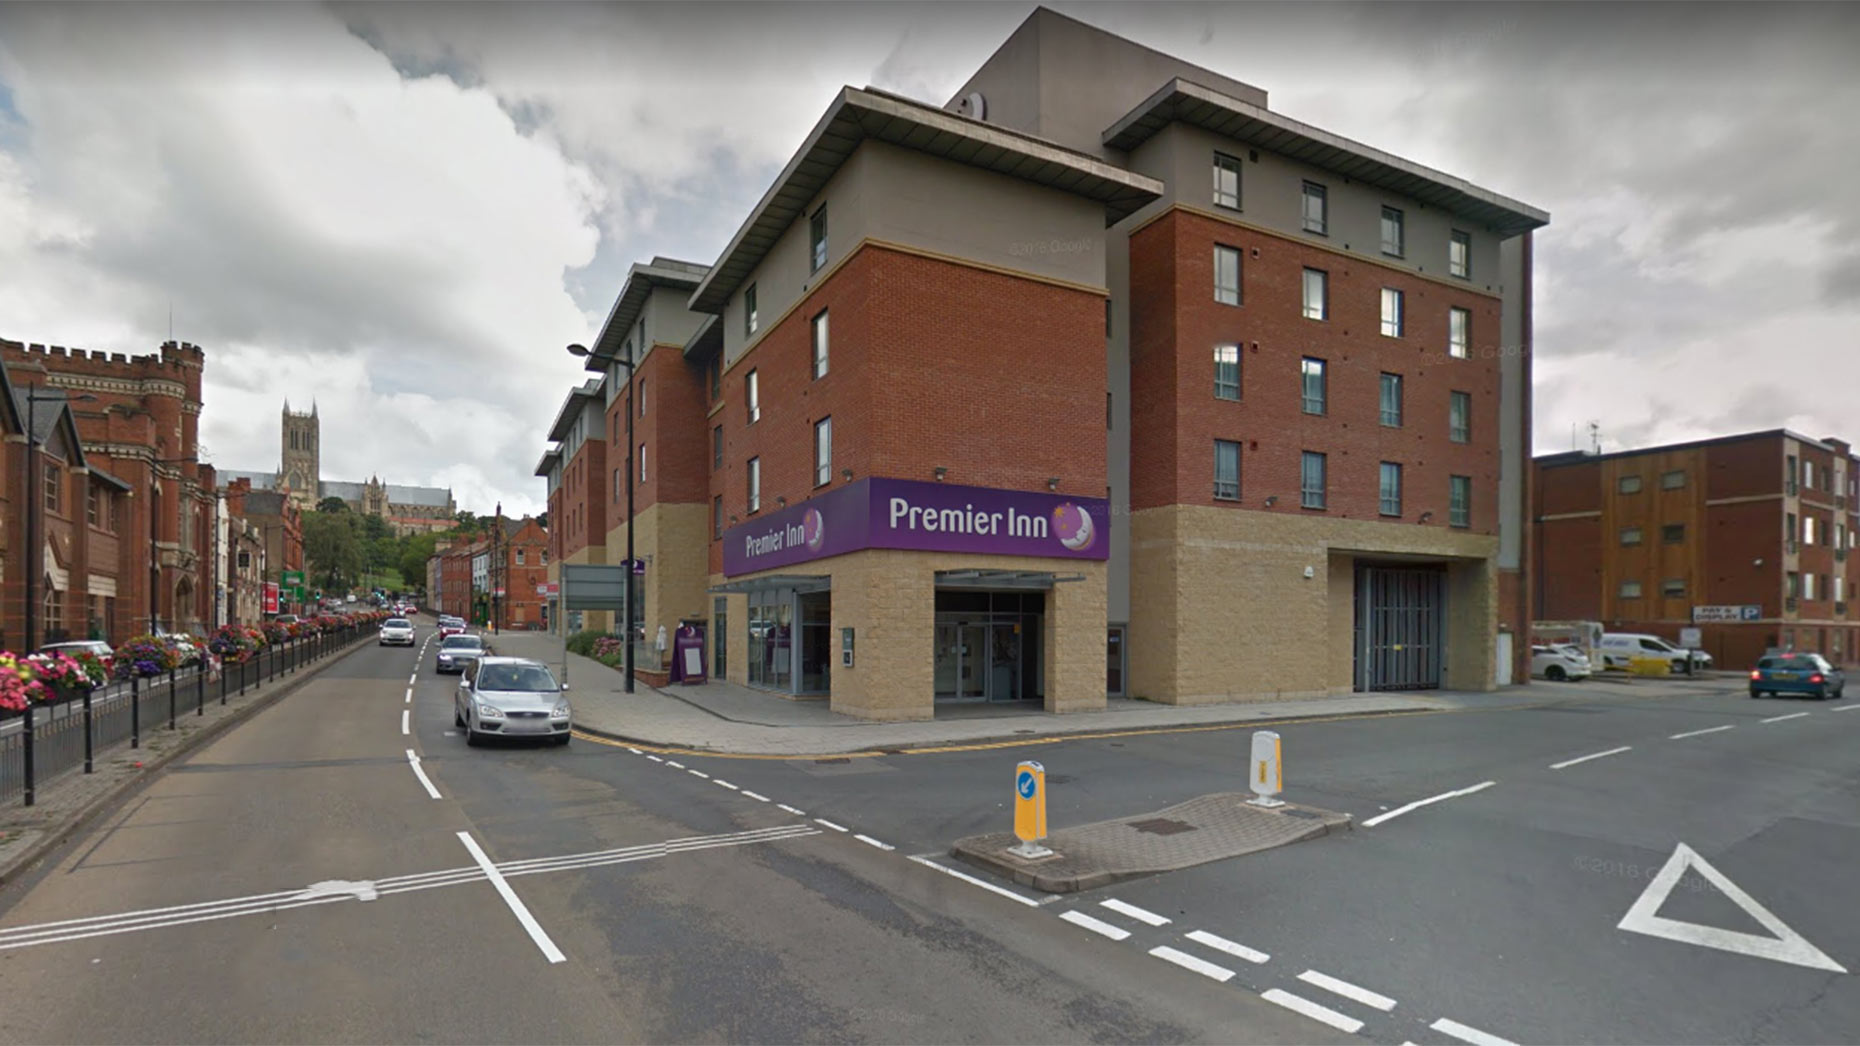 Premier Inn Submits Plans For Lincoln Hotel Expansion